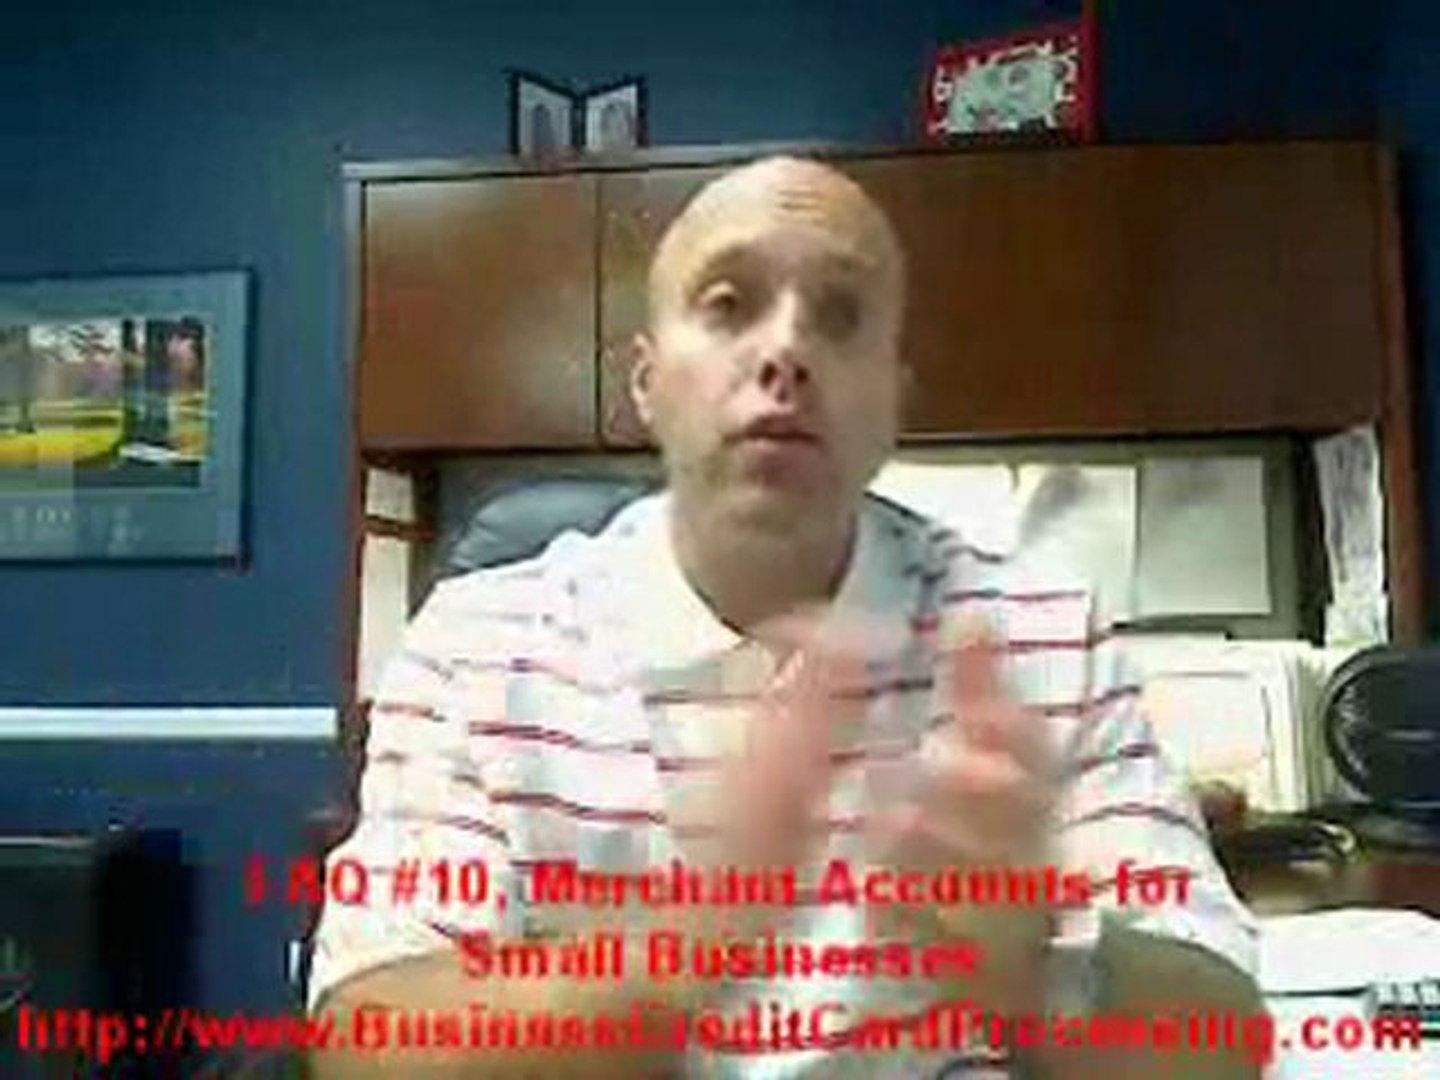 #10, Merchant Accounts for Businesses, New York City and Bo